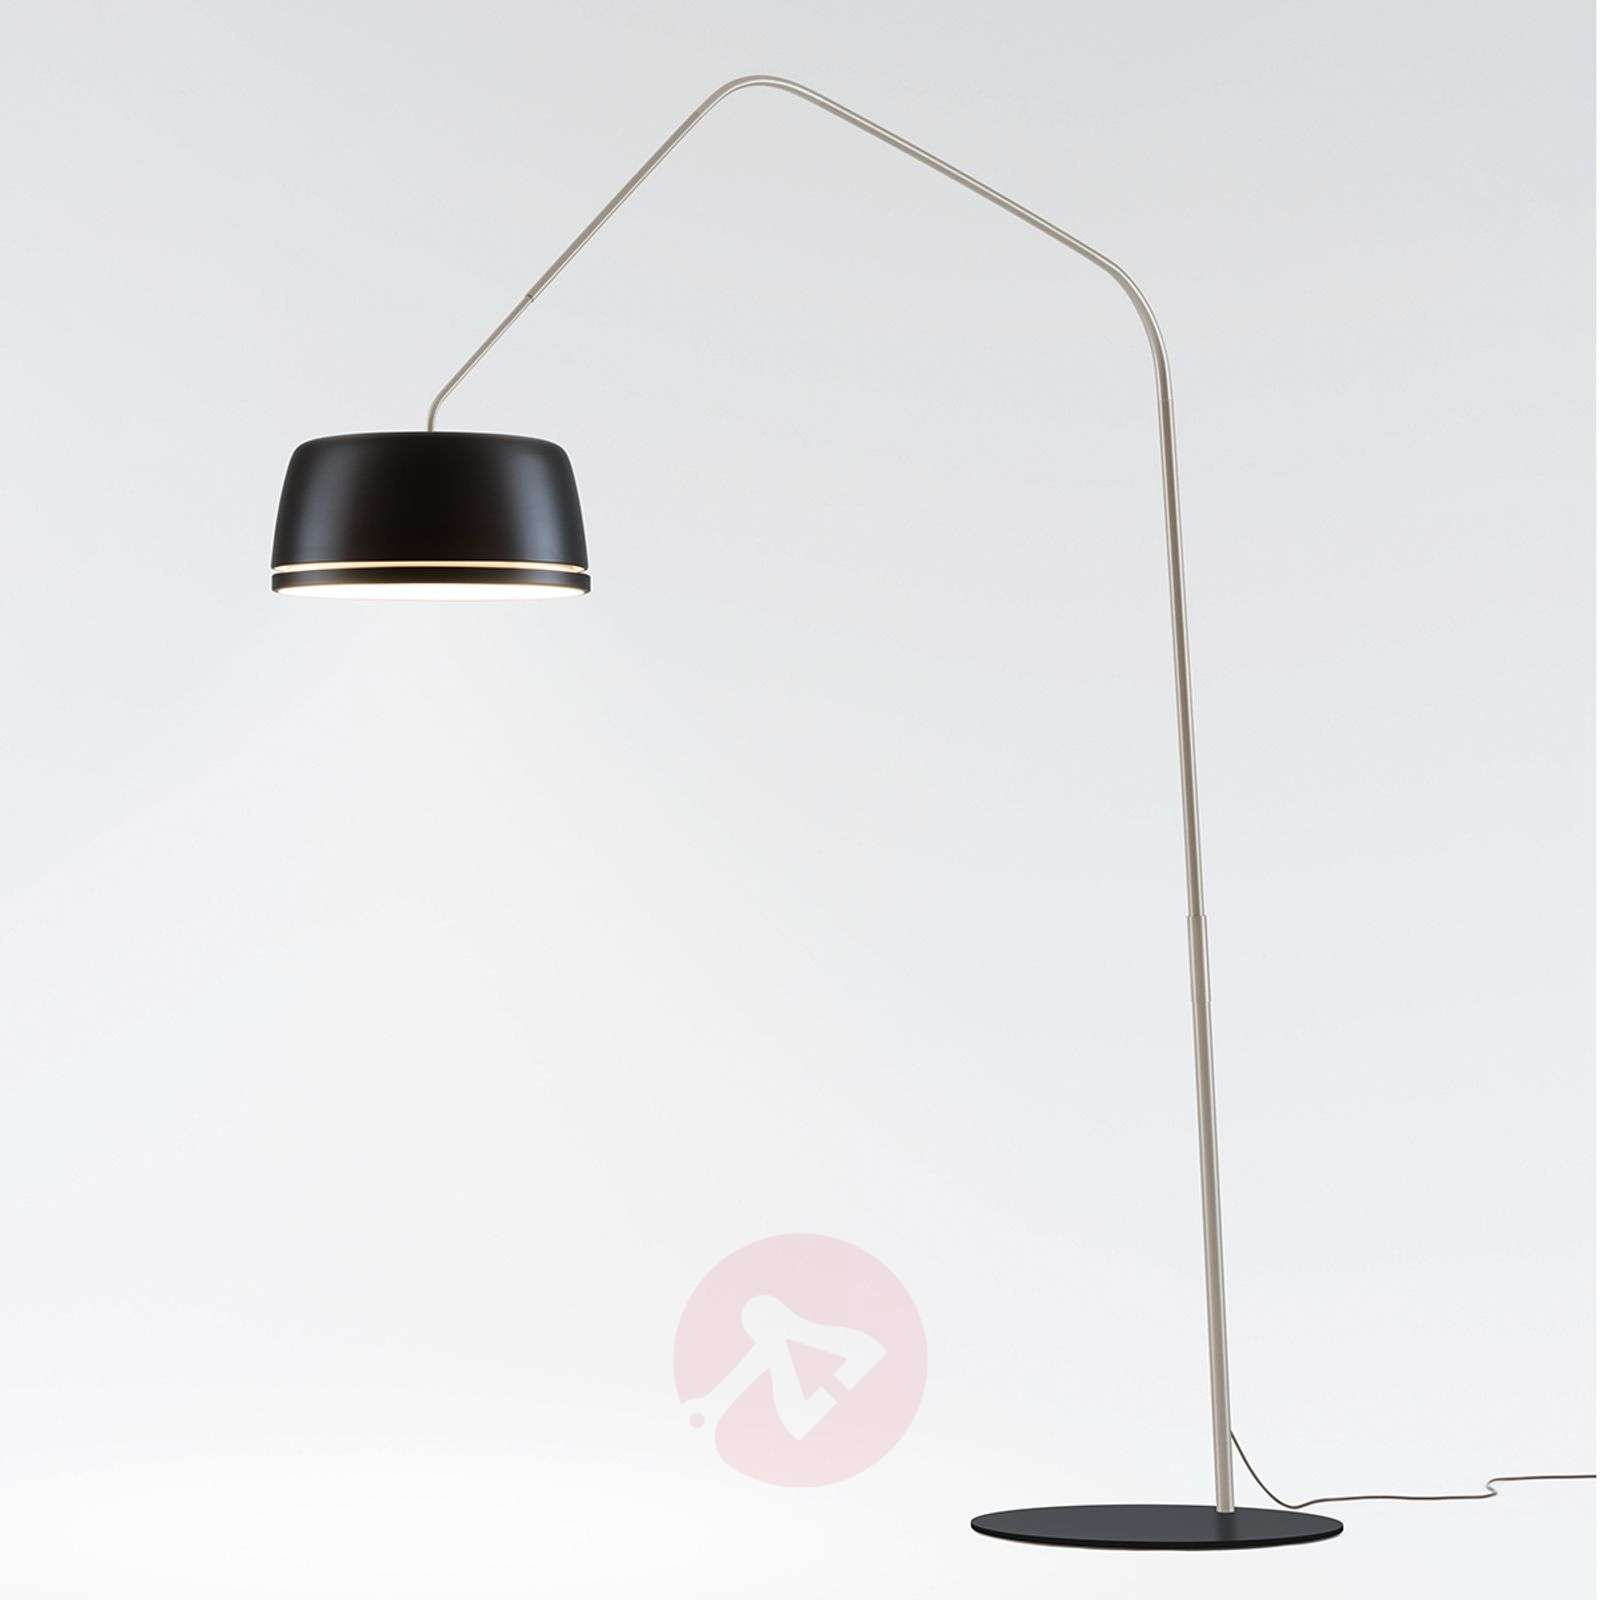 Acquista lampada led di design central ad arco - Lampada led design ...